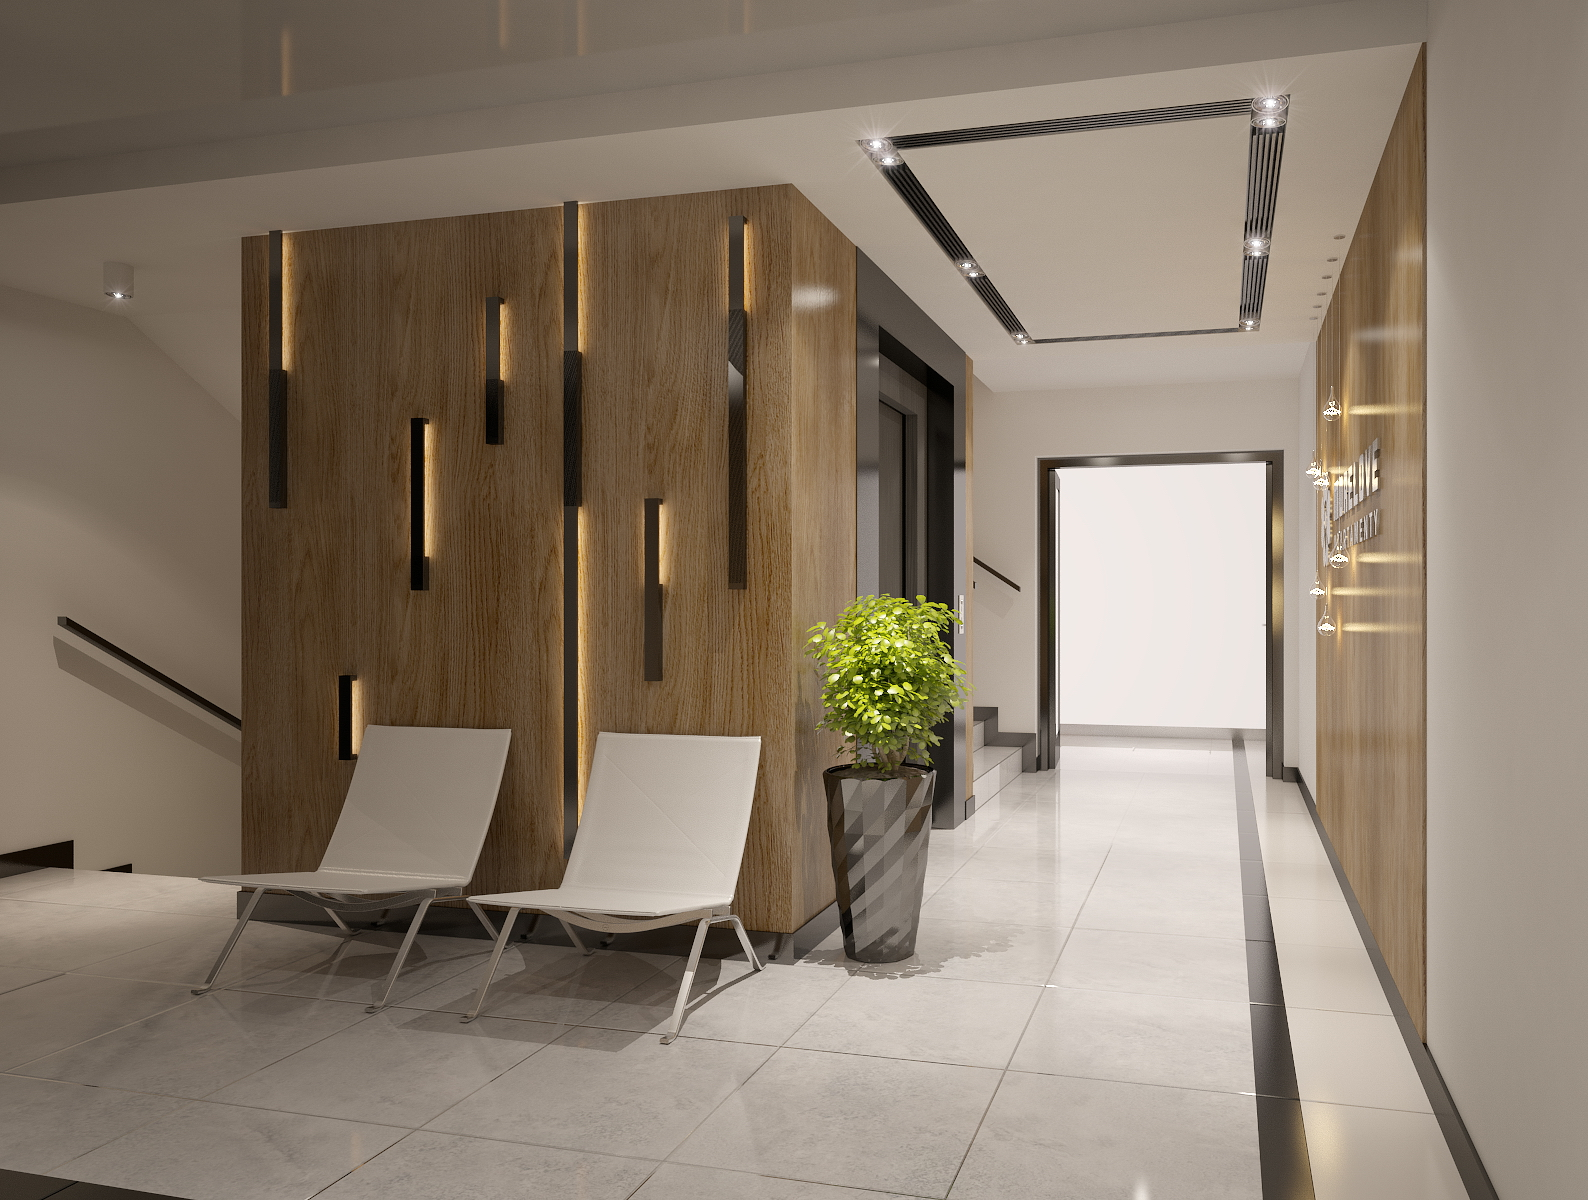 Interior Design Foyer Area Image : Apartments building entrance hall area foyer lobby with